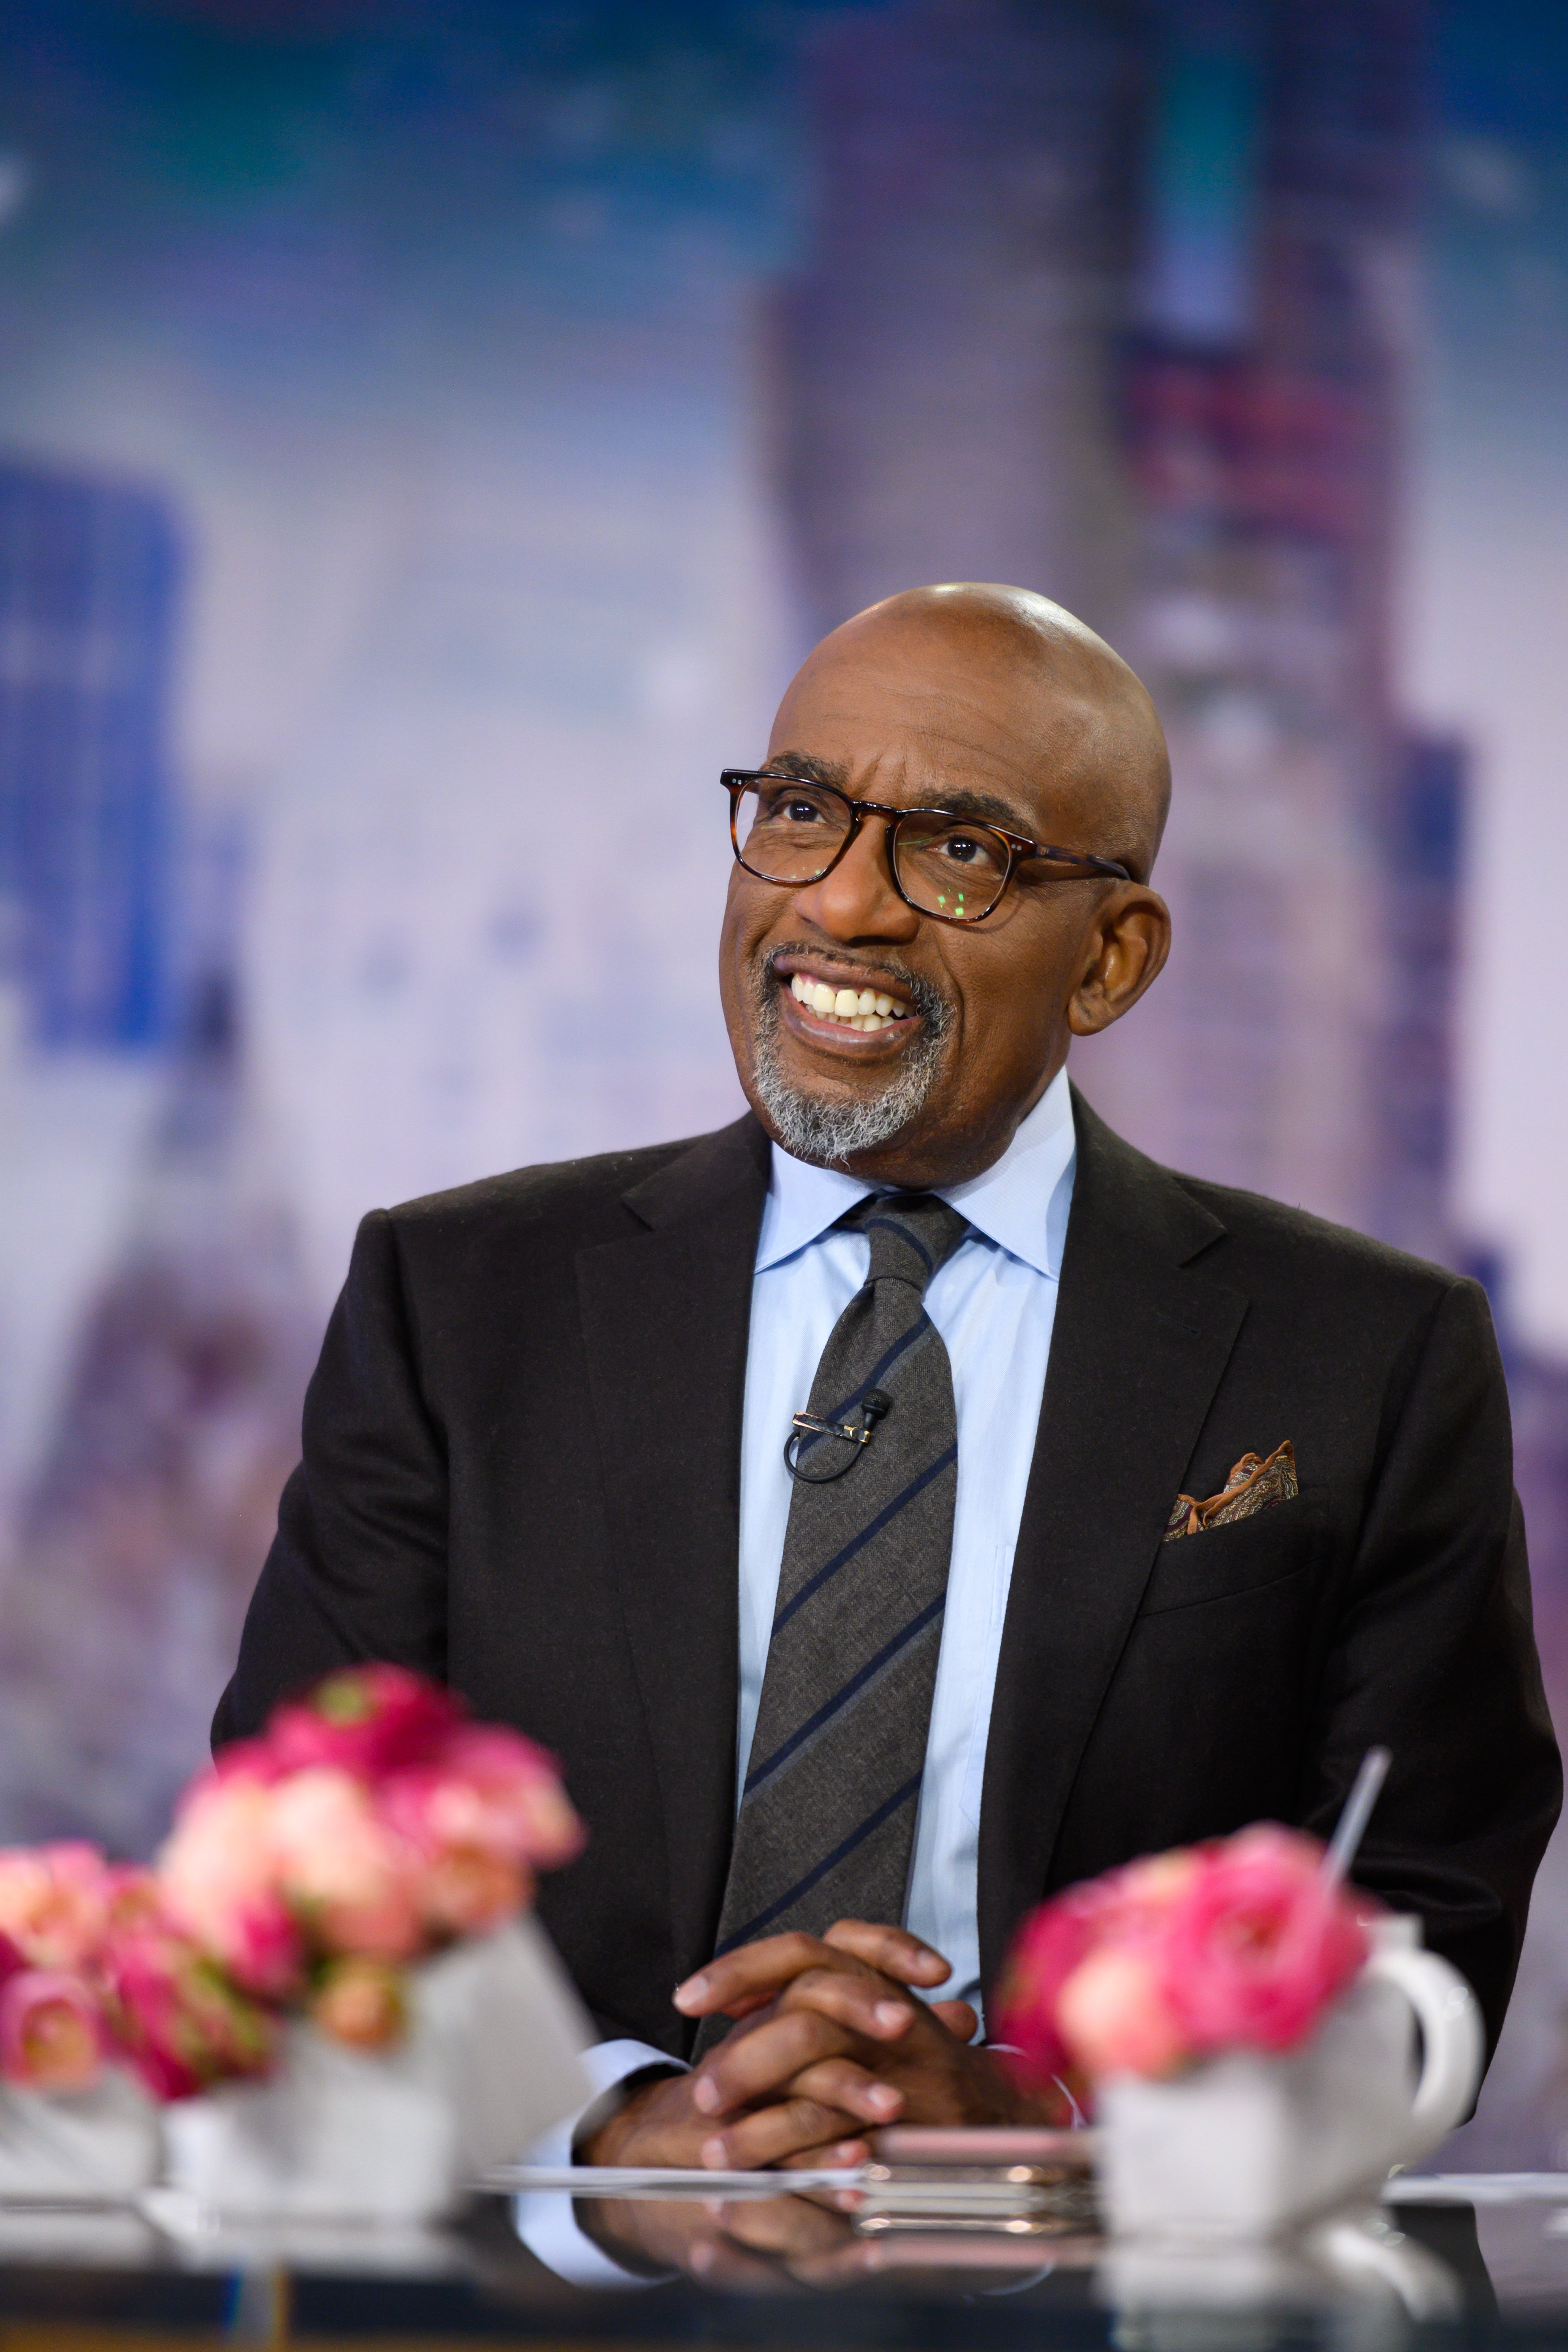 Al Roker pictured on Wednesday, February 11, 2020.   Source: Getty Images.